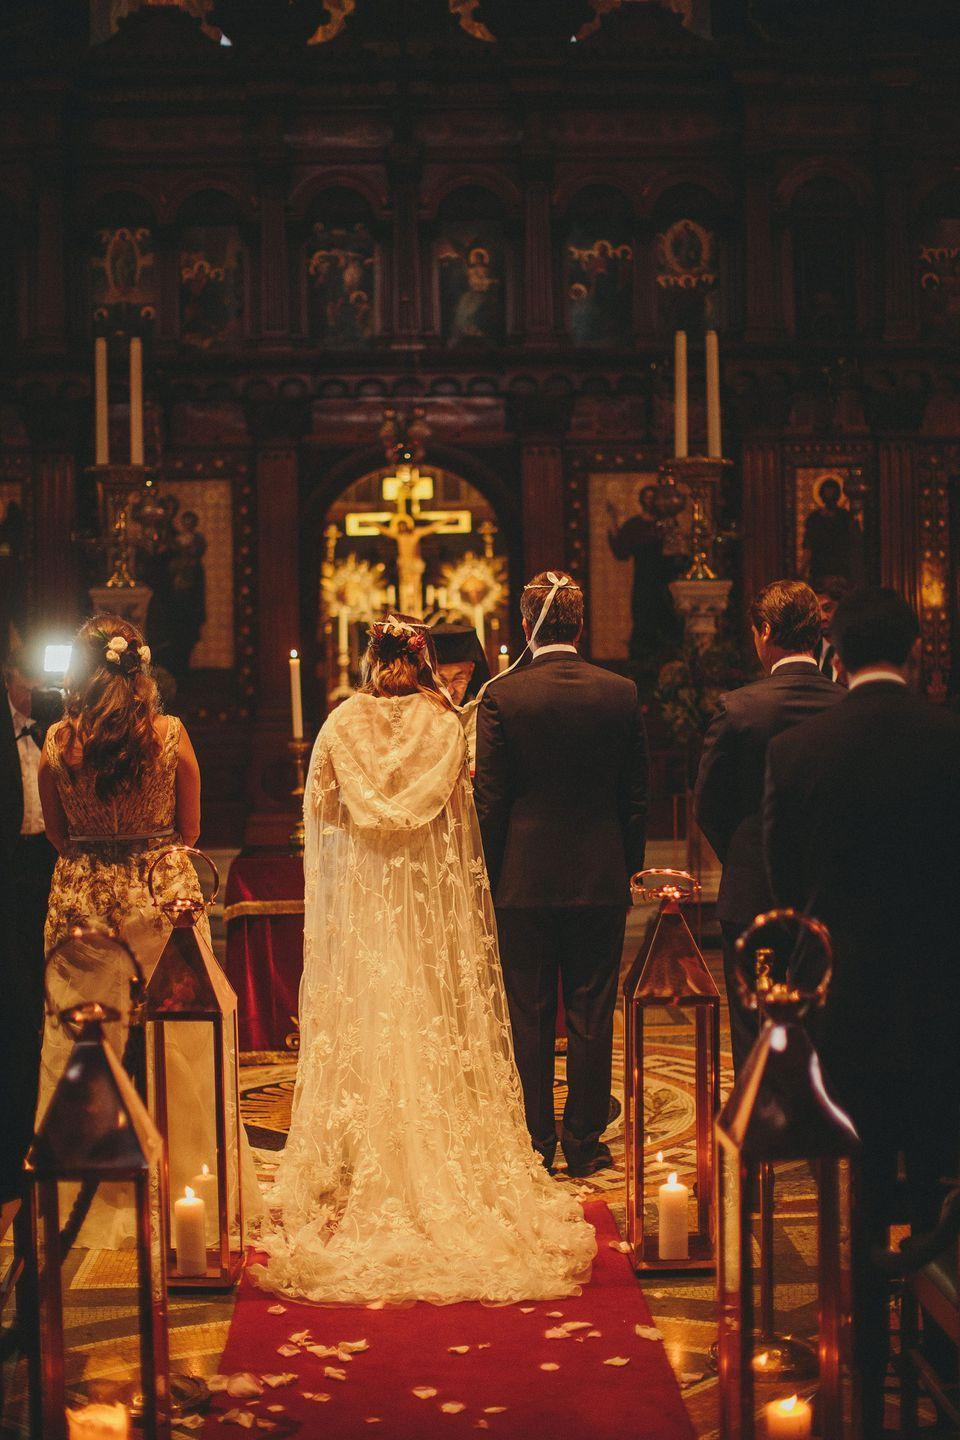 <p><strong>Wedding dress and cape:</strong> Bespoke design by Emma Victoria Payne </p><p><strong>Shoes:</strong> Jimmy Choo</p><p><strong>Earrings:</strong> Vintage (from her grandmother)</p>